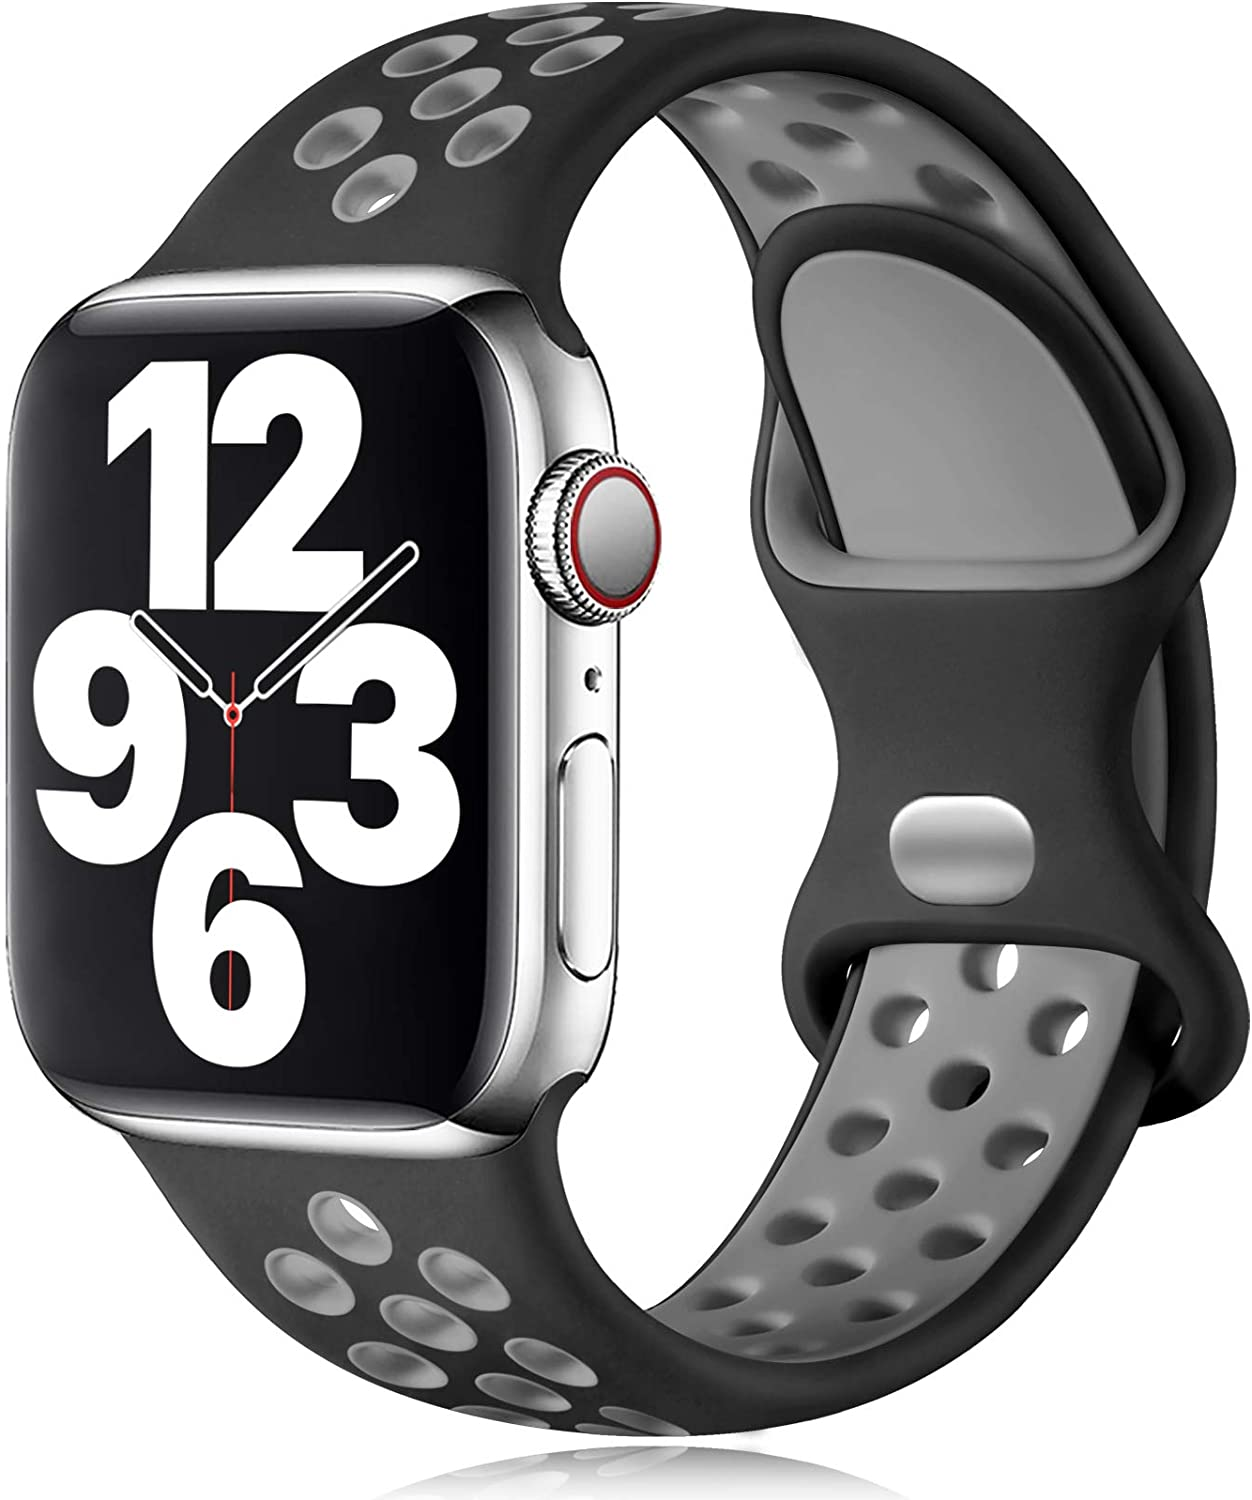 Vcegari Compatible with 38mm Apple Watch Band Women, iWatch 40mm SE Band Womens, Breathable Silicone Replacement for iWatch Series 6 5 4 3 2 1, Black/Gray S/M